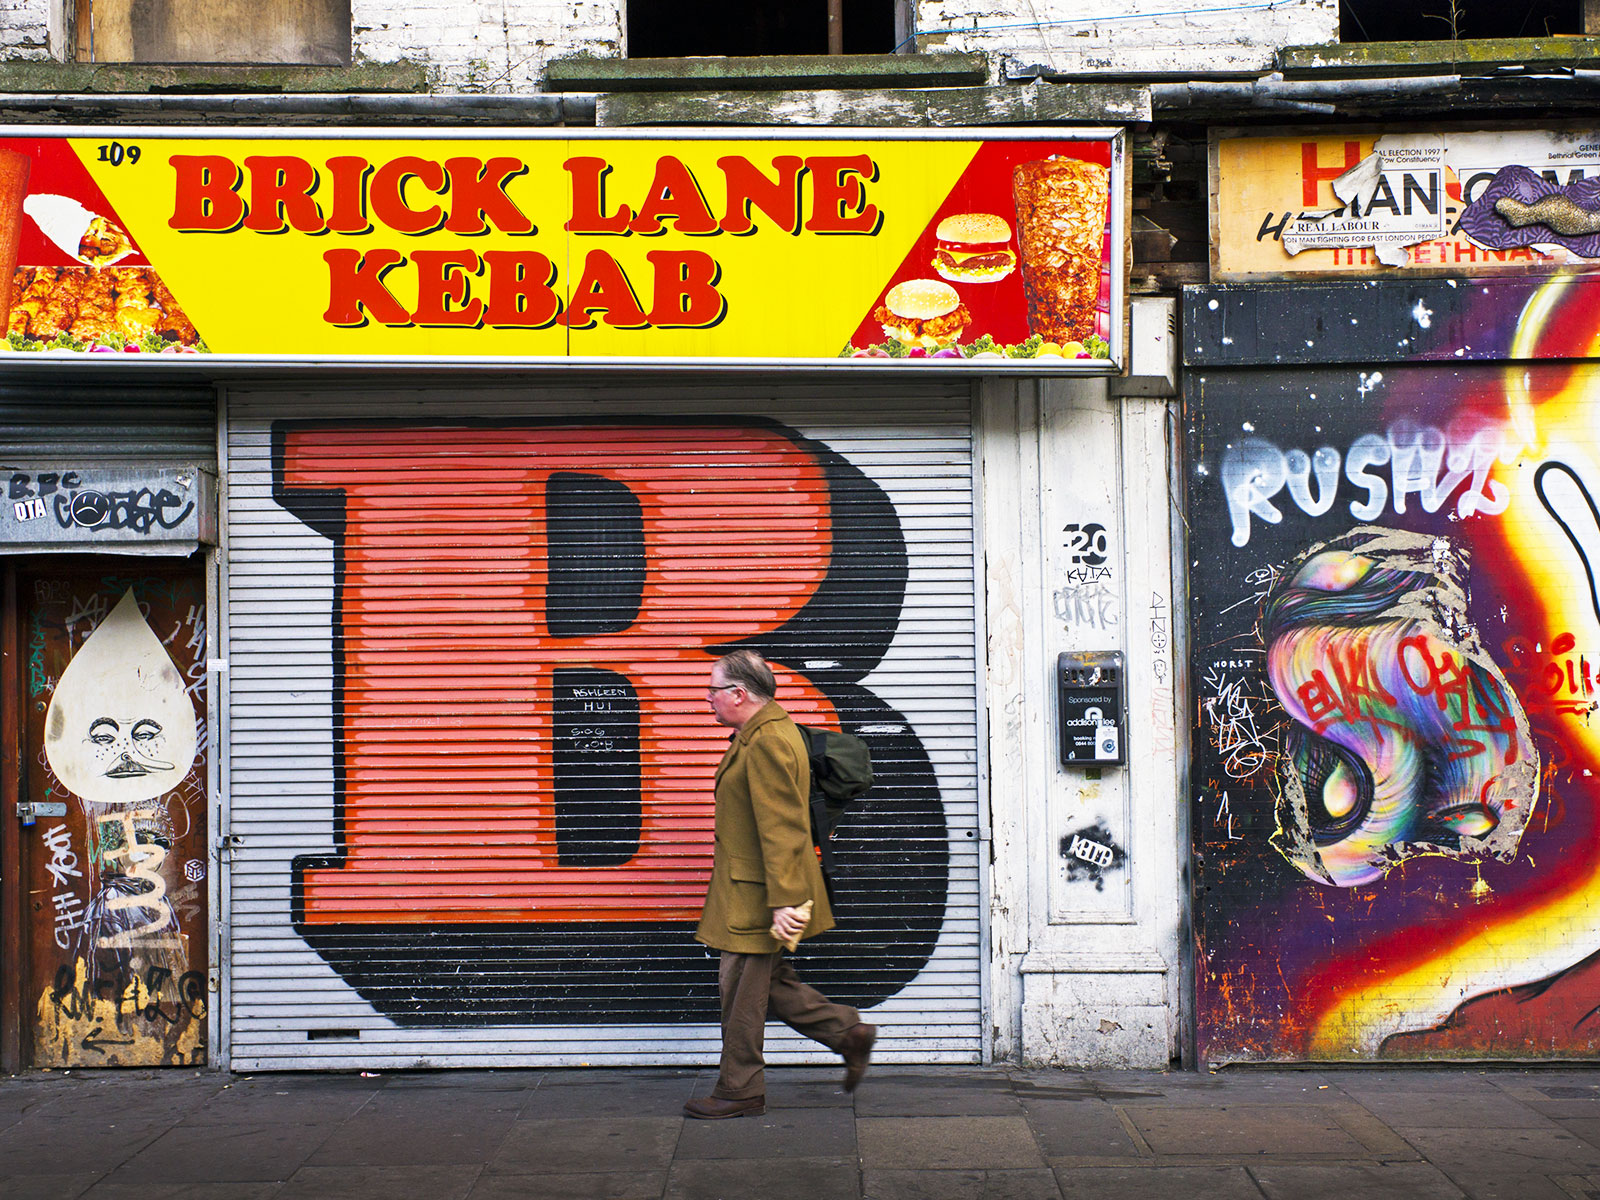 brick lane kebabs in london